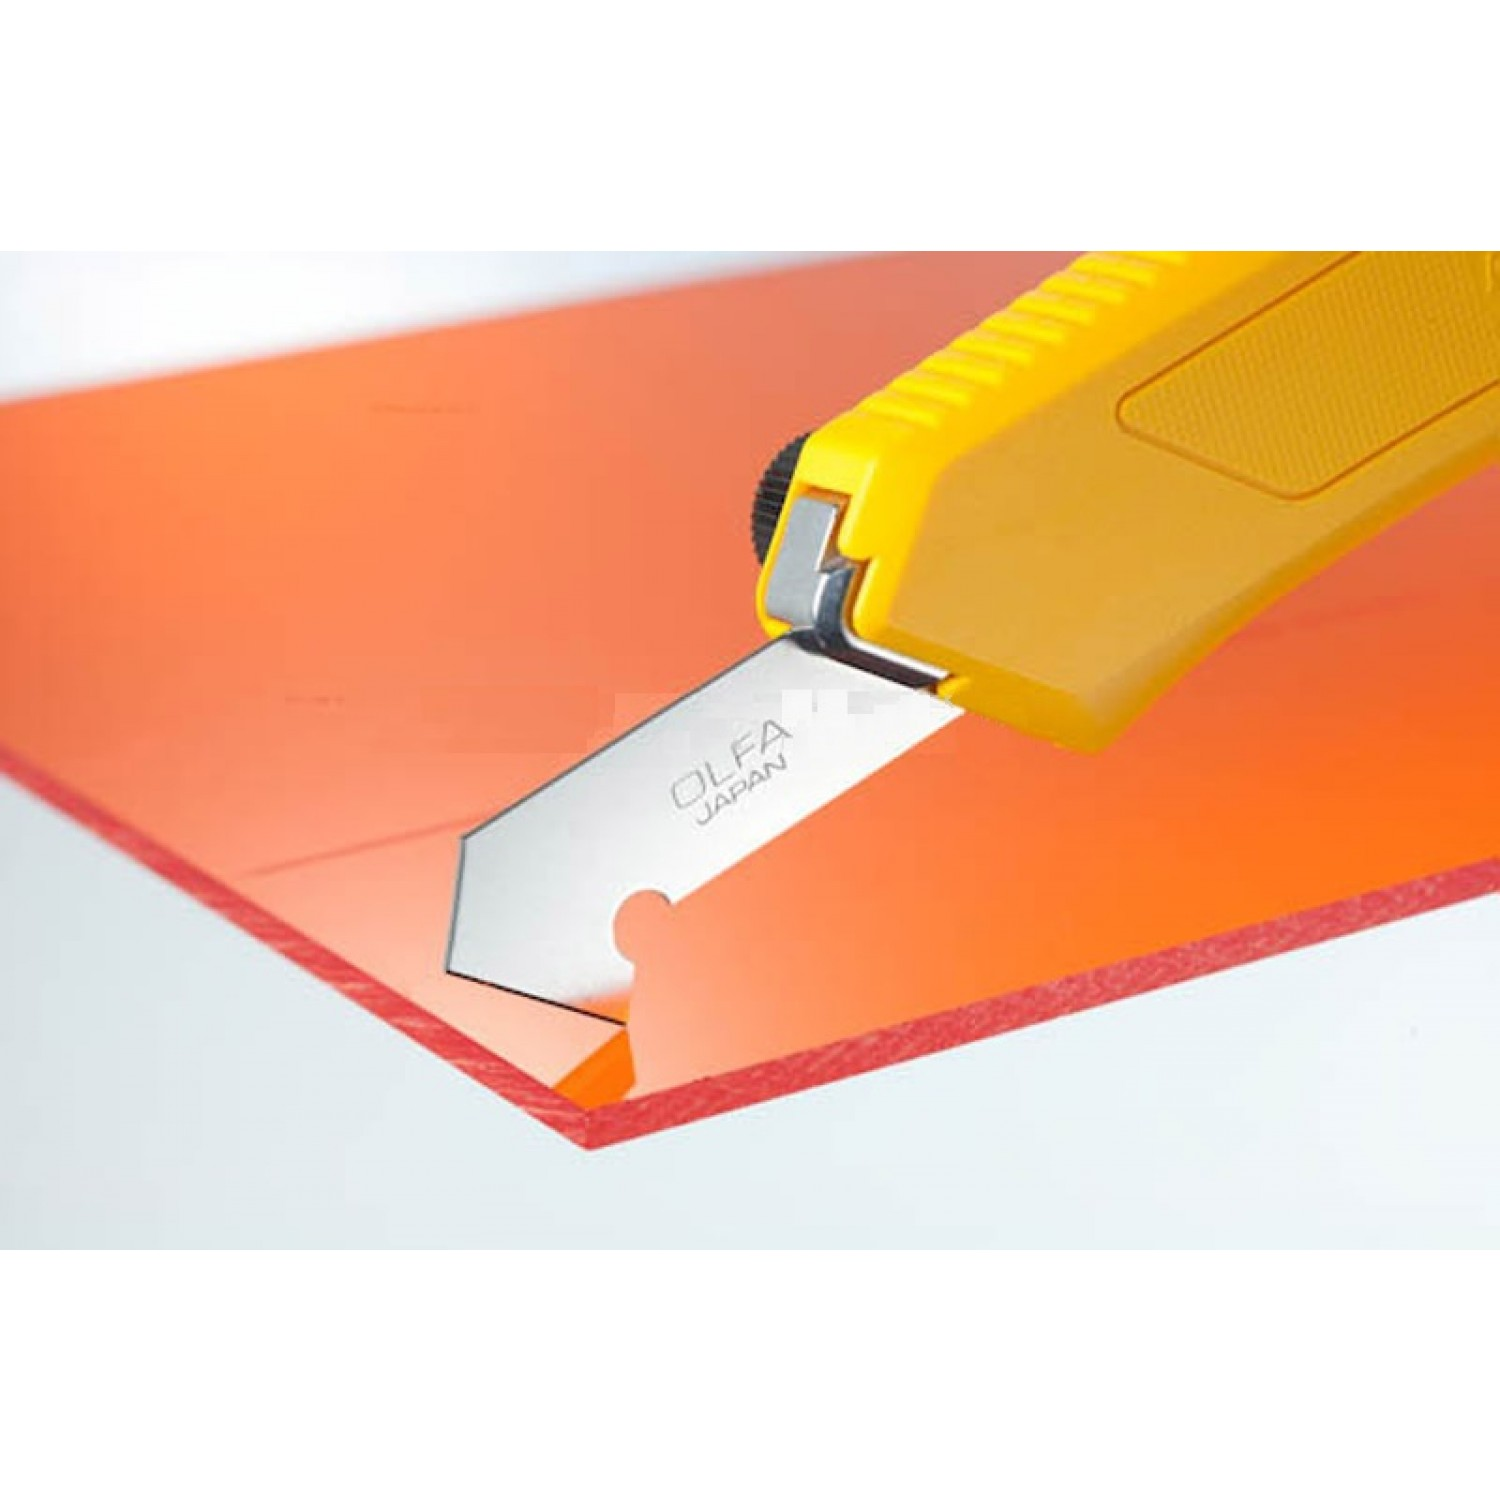 Olfa PC-L Plastic Laminate Cutter Illustration